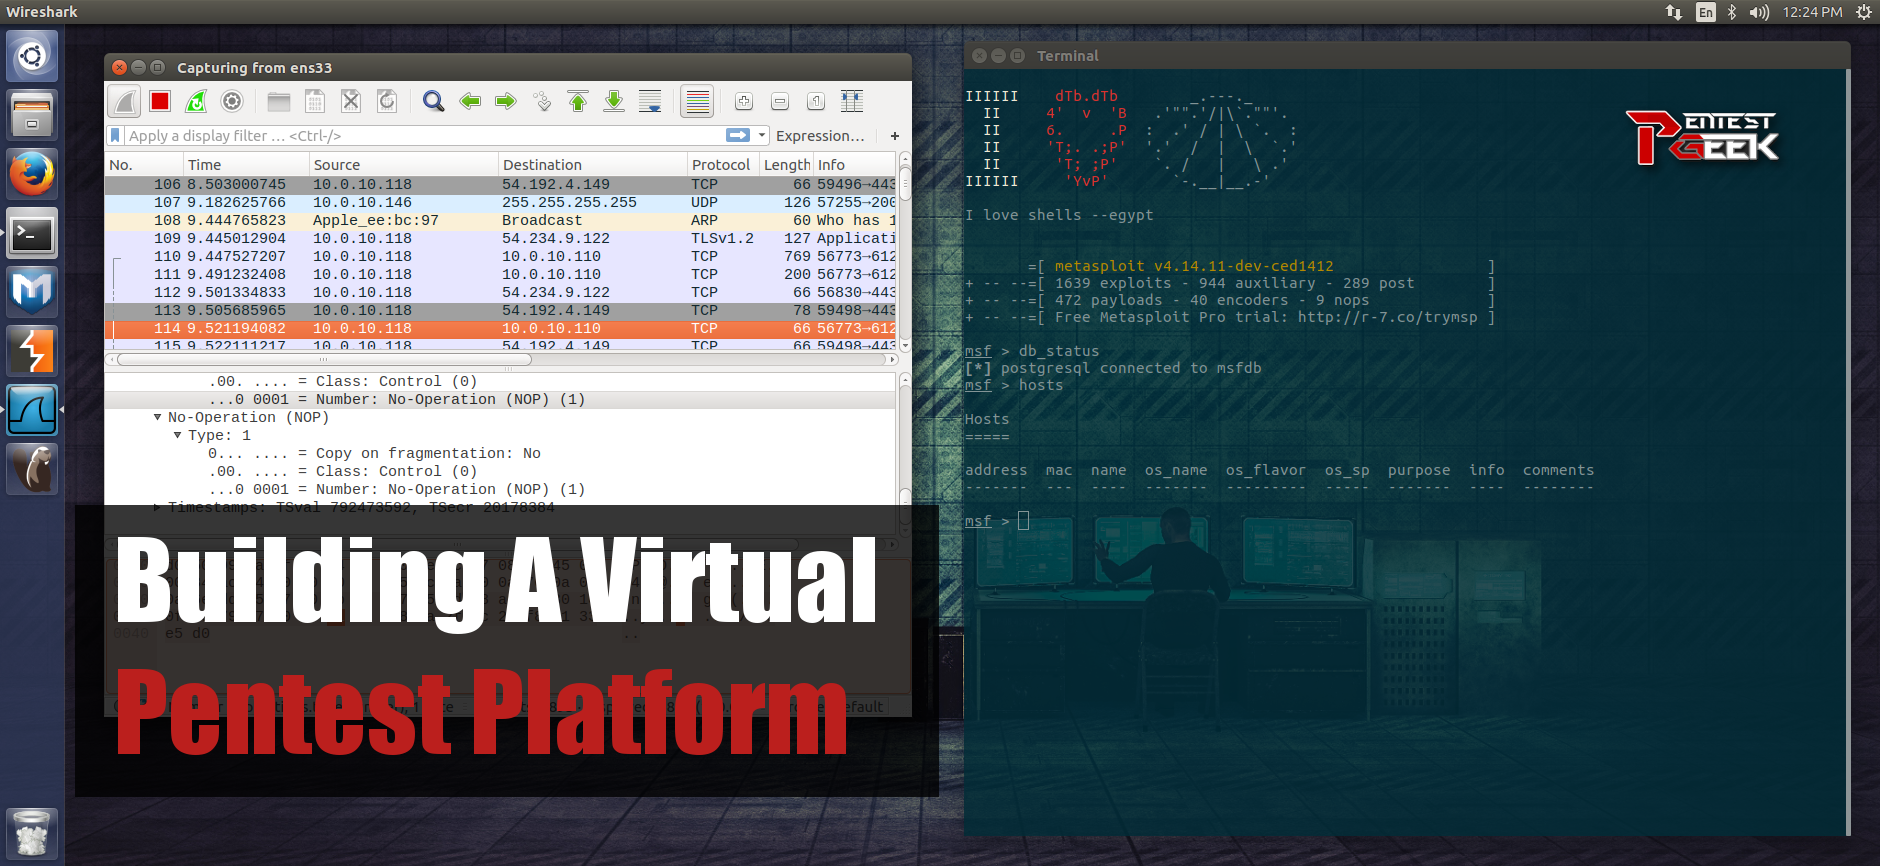 Buiding A Virtual Pentest Platform